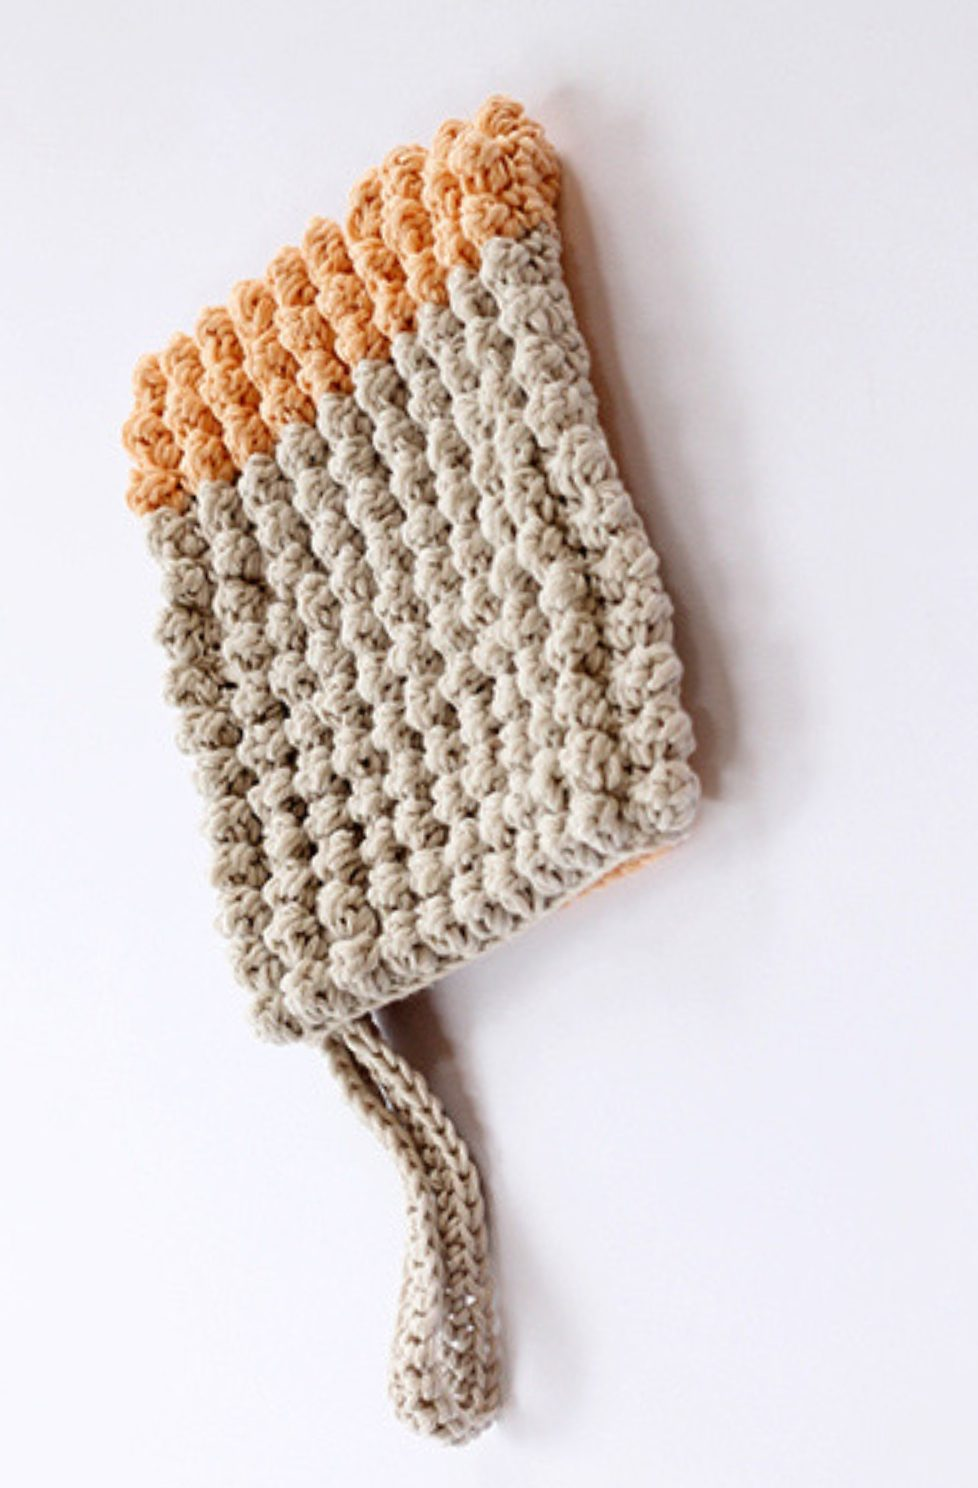 Crochet Wash Mitt Pattern